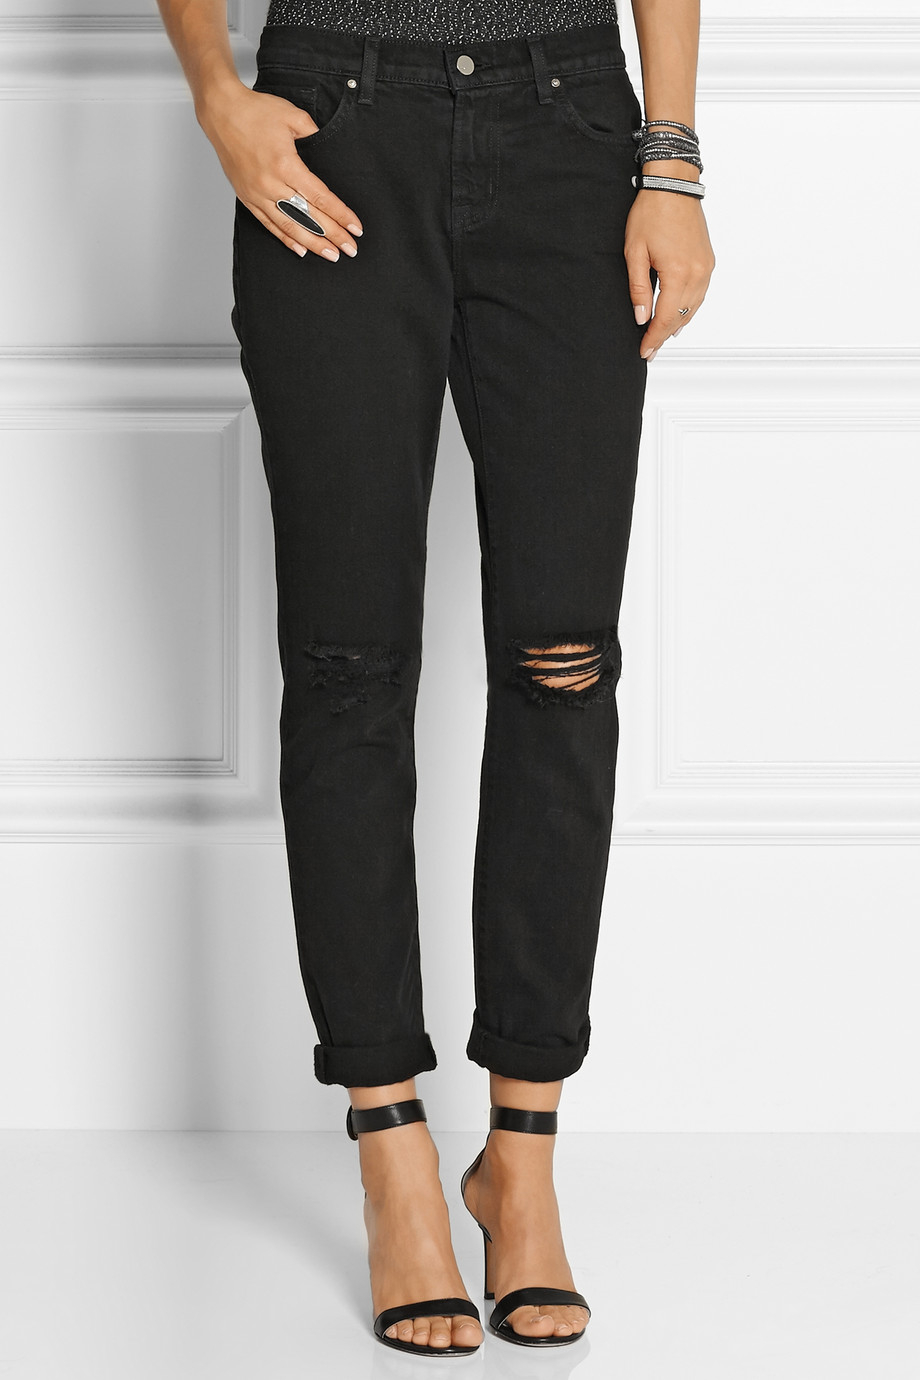 J brand Jake Distressed Mid-rise Slim Boyfriend Jeans in Black | Lyst